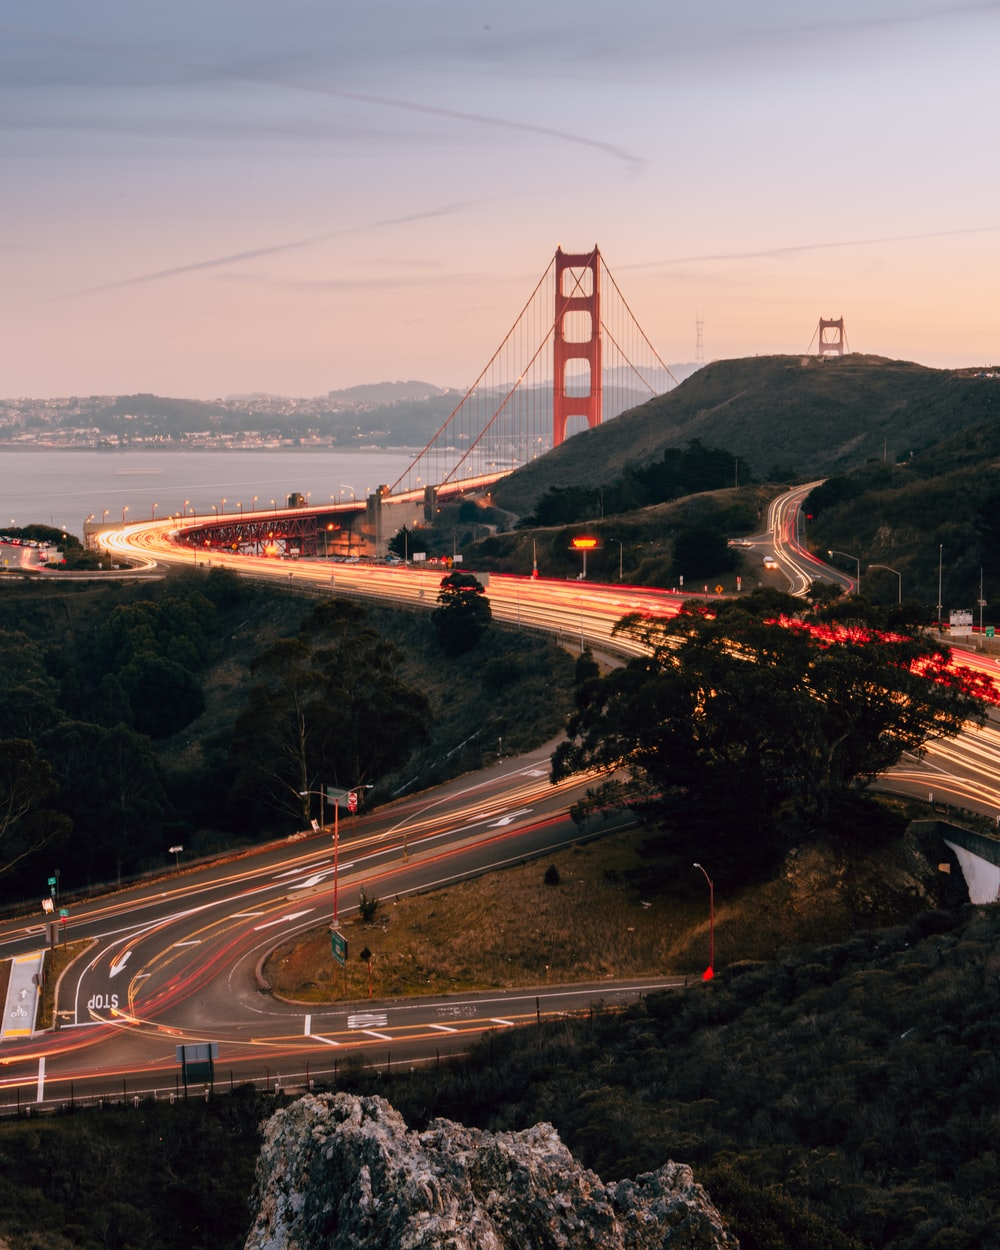 time-lapse photography of cars on road by Golden Gate Bridge